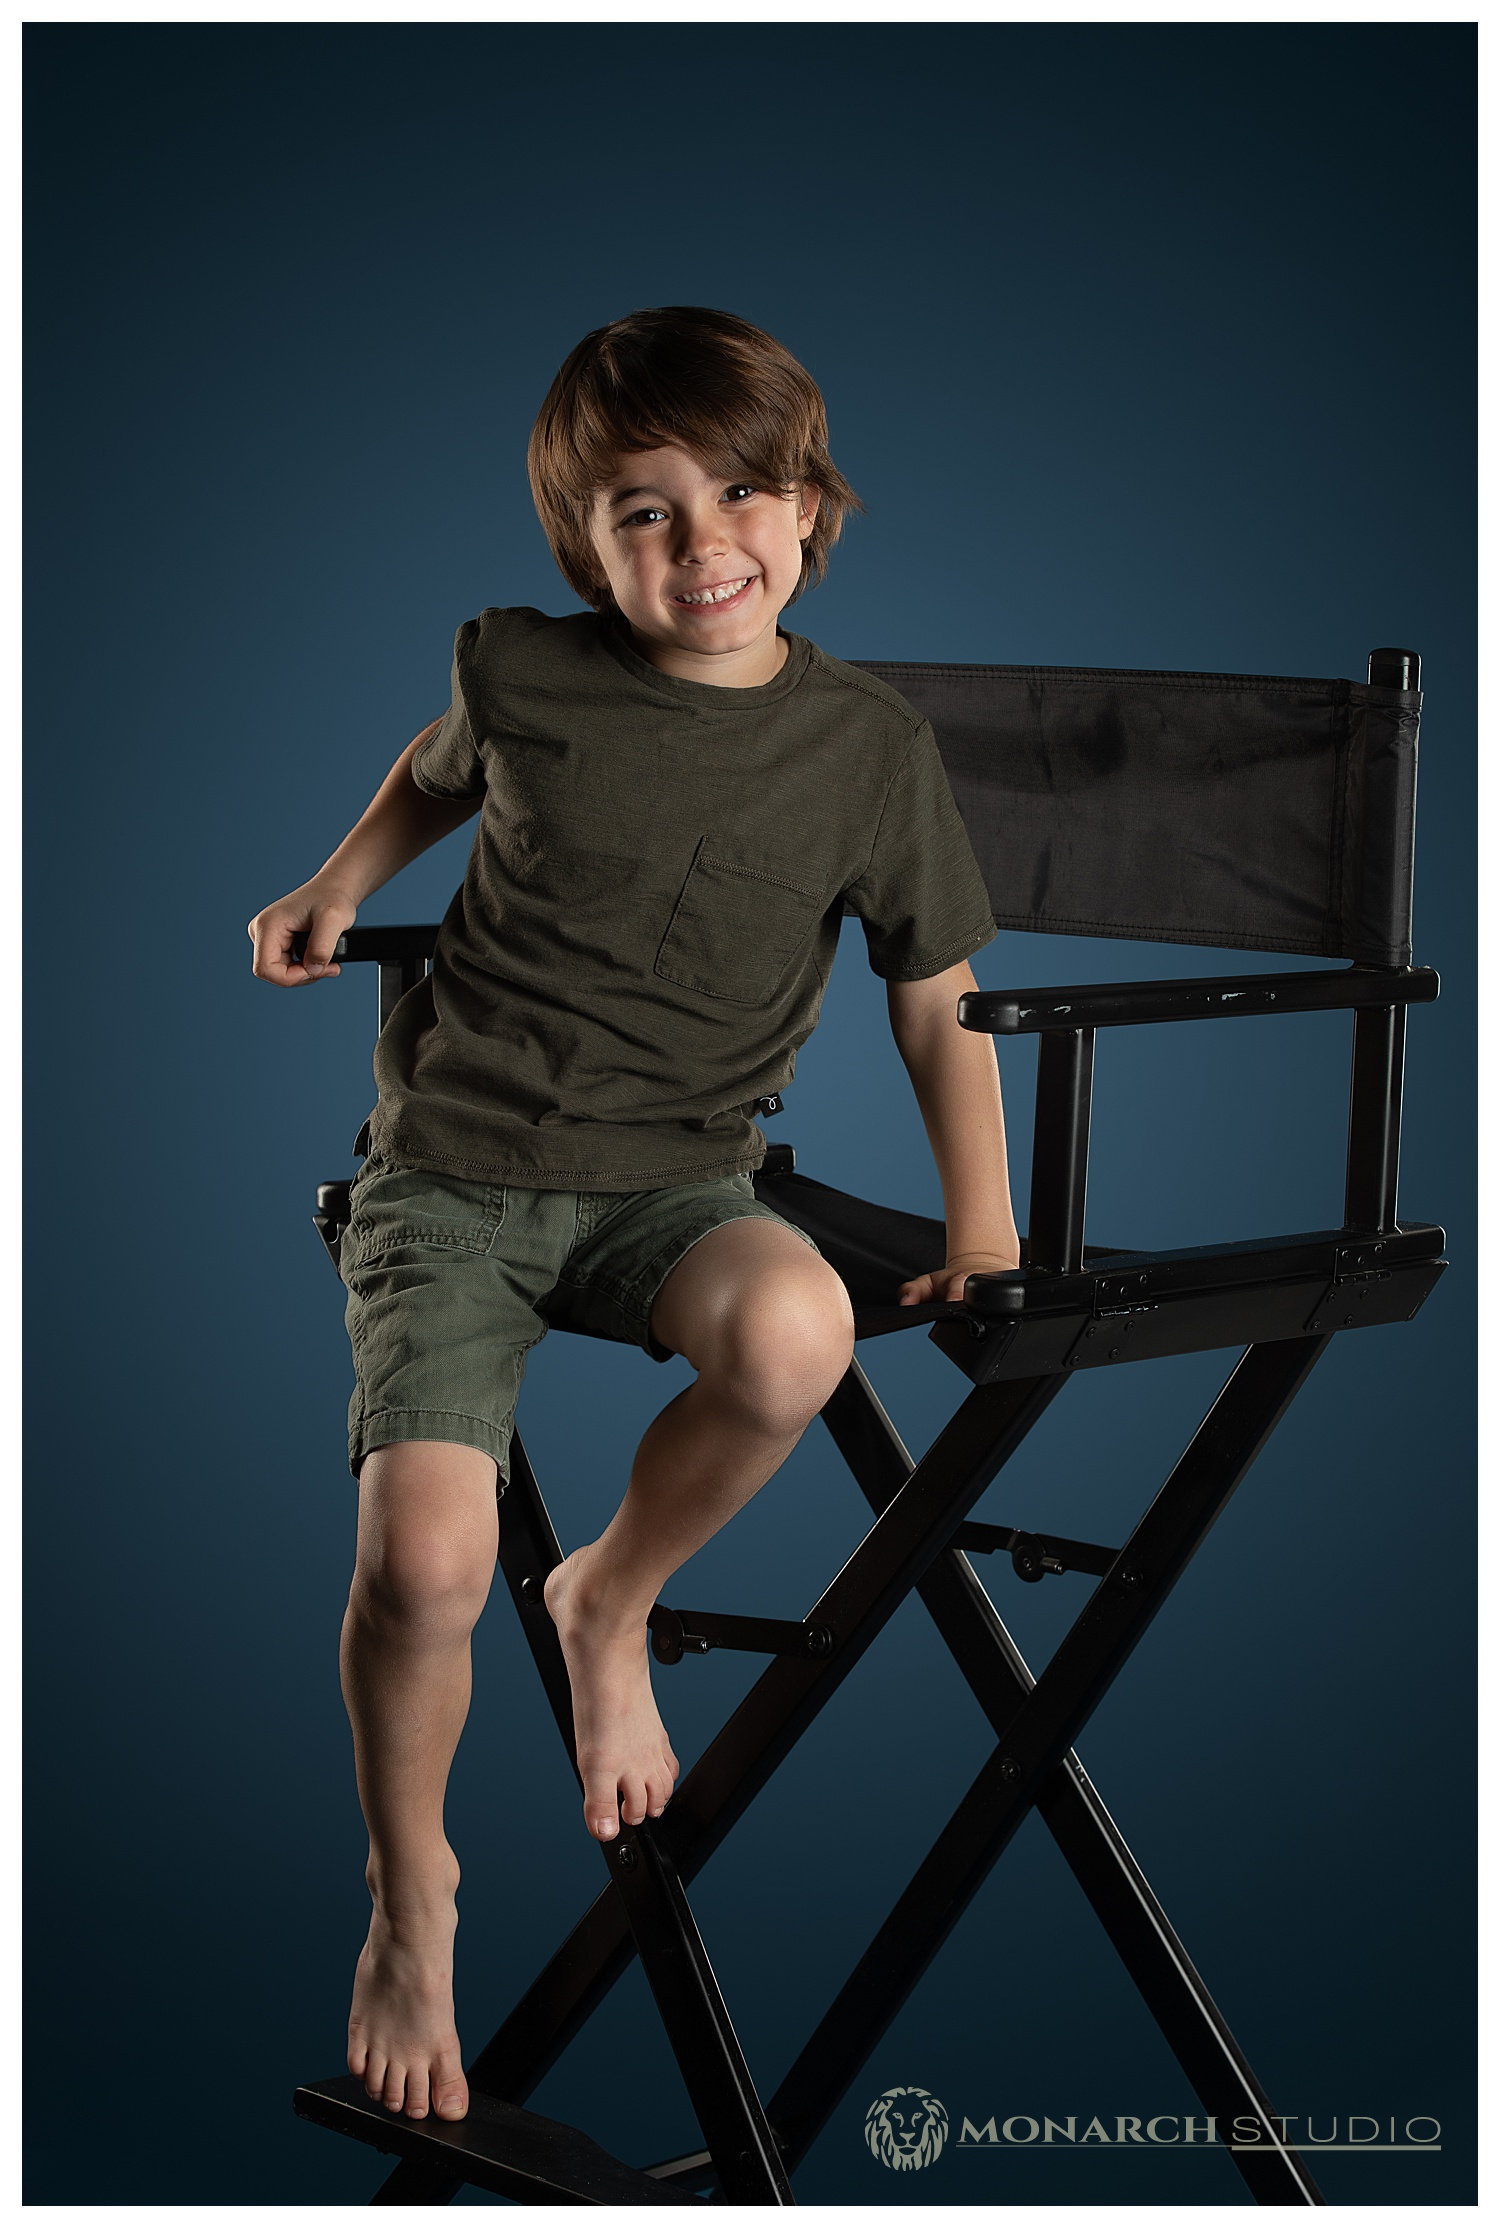 North Florida Kids Photography Studio - 012.JPG